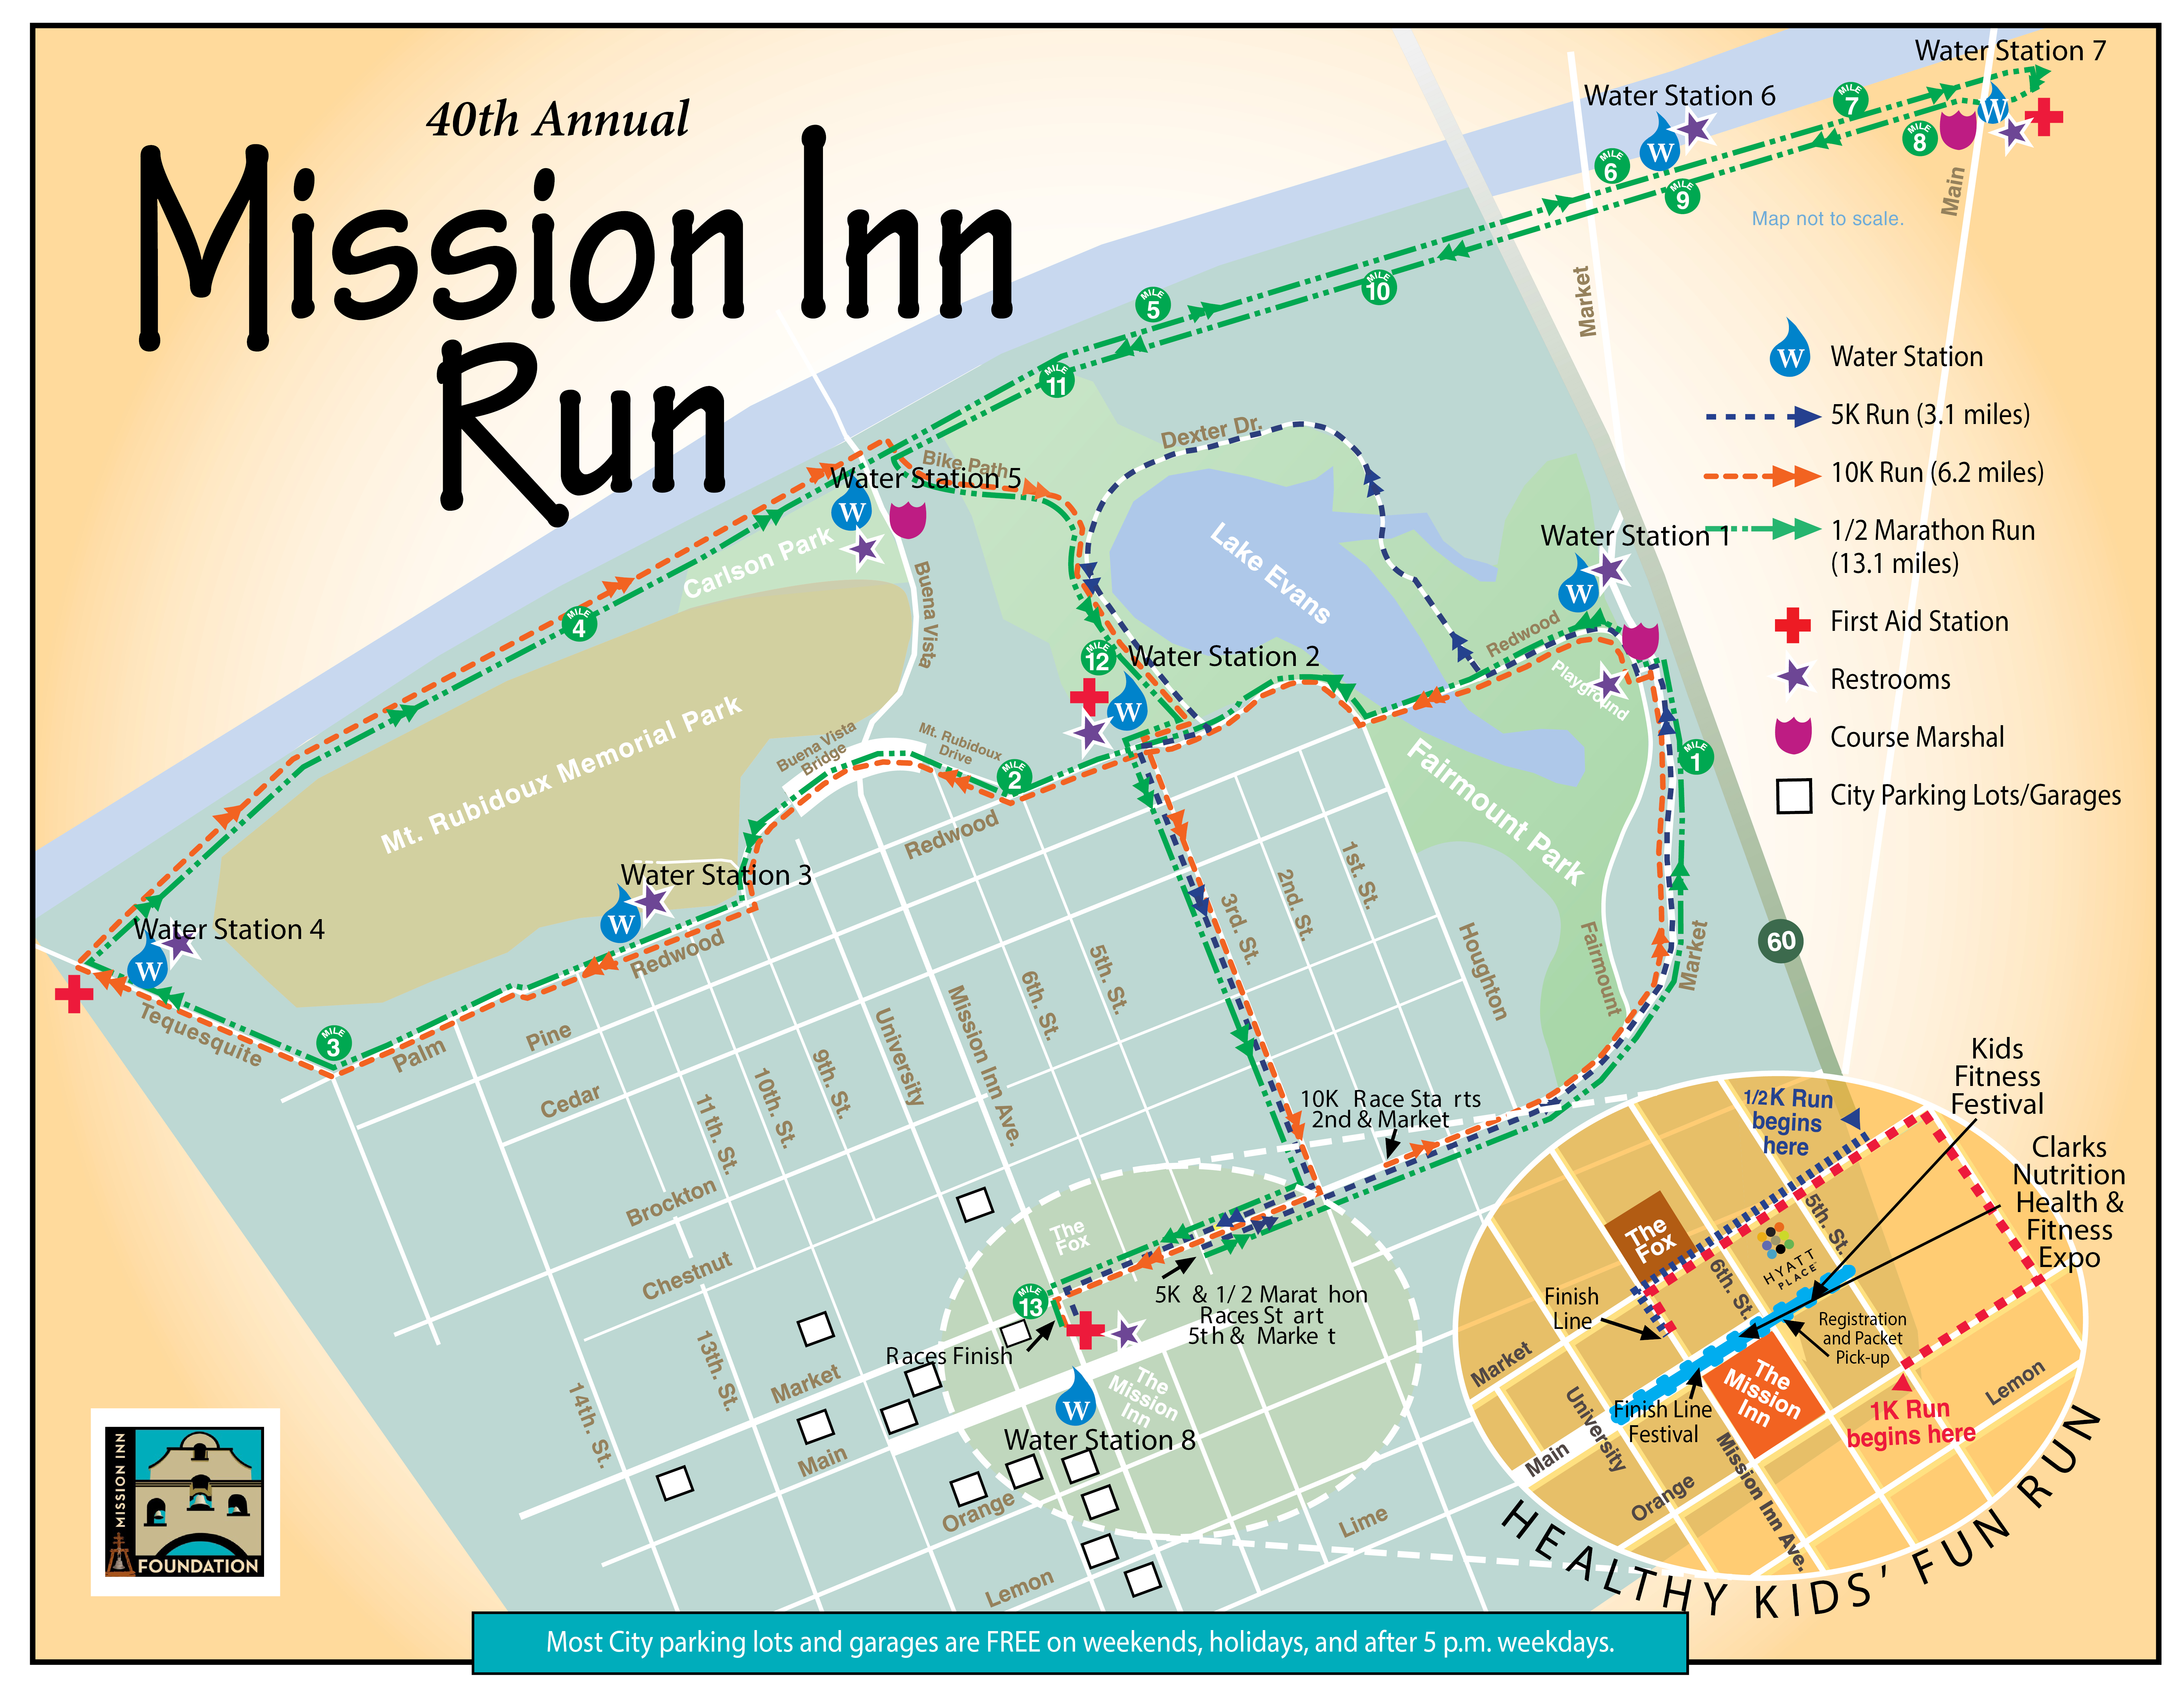 course  mission inn foundation - here is the official course map for the th annual mission inn run startplanning your race strategy now and make sure to look for landmarks alongthe